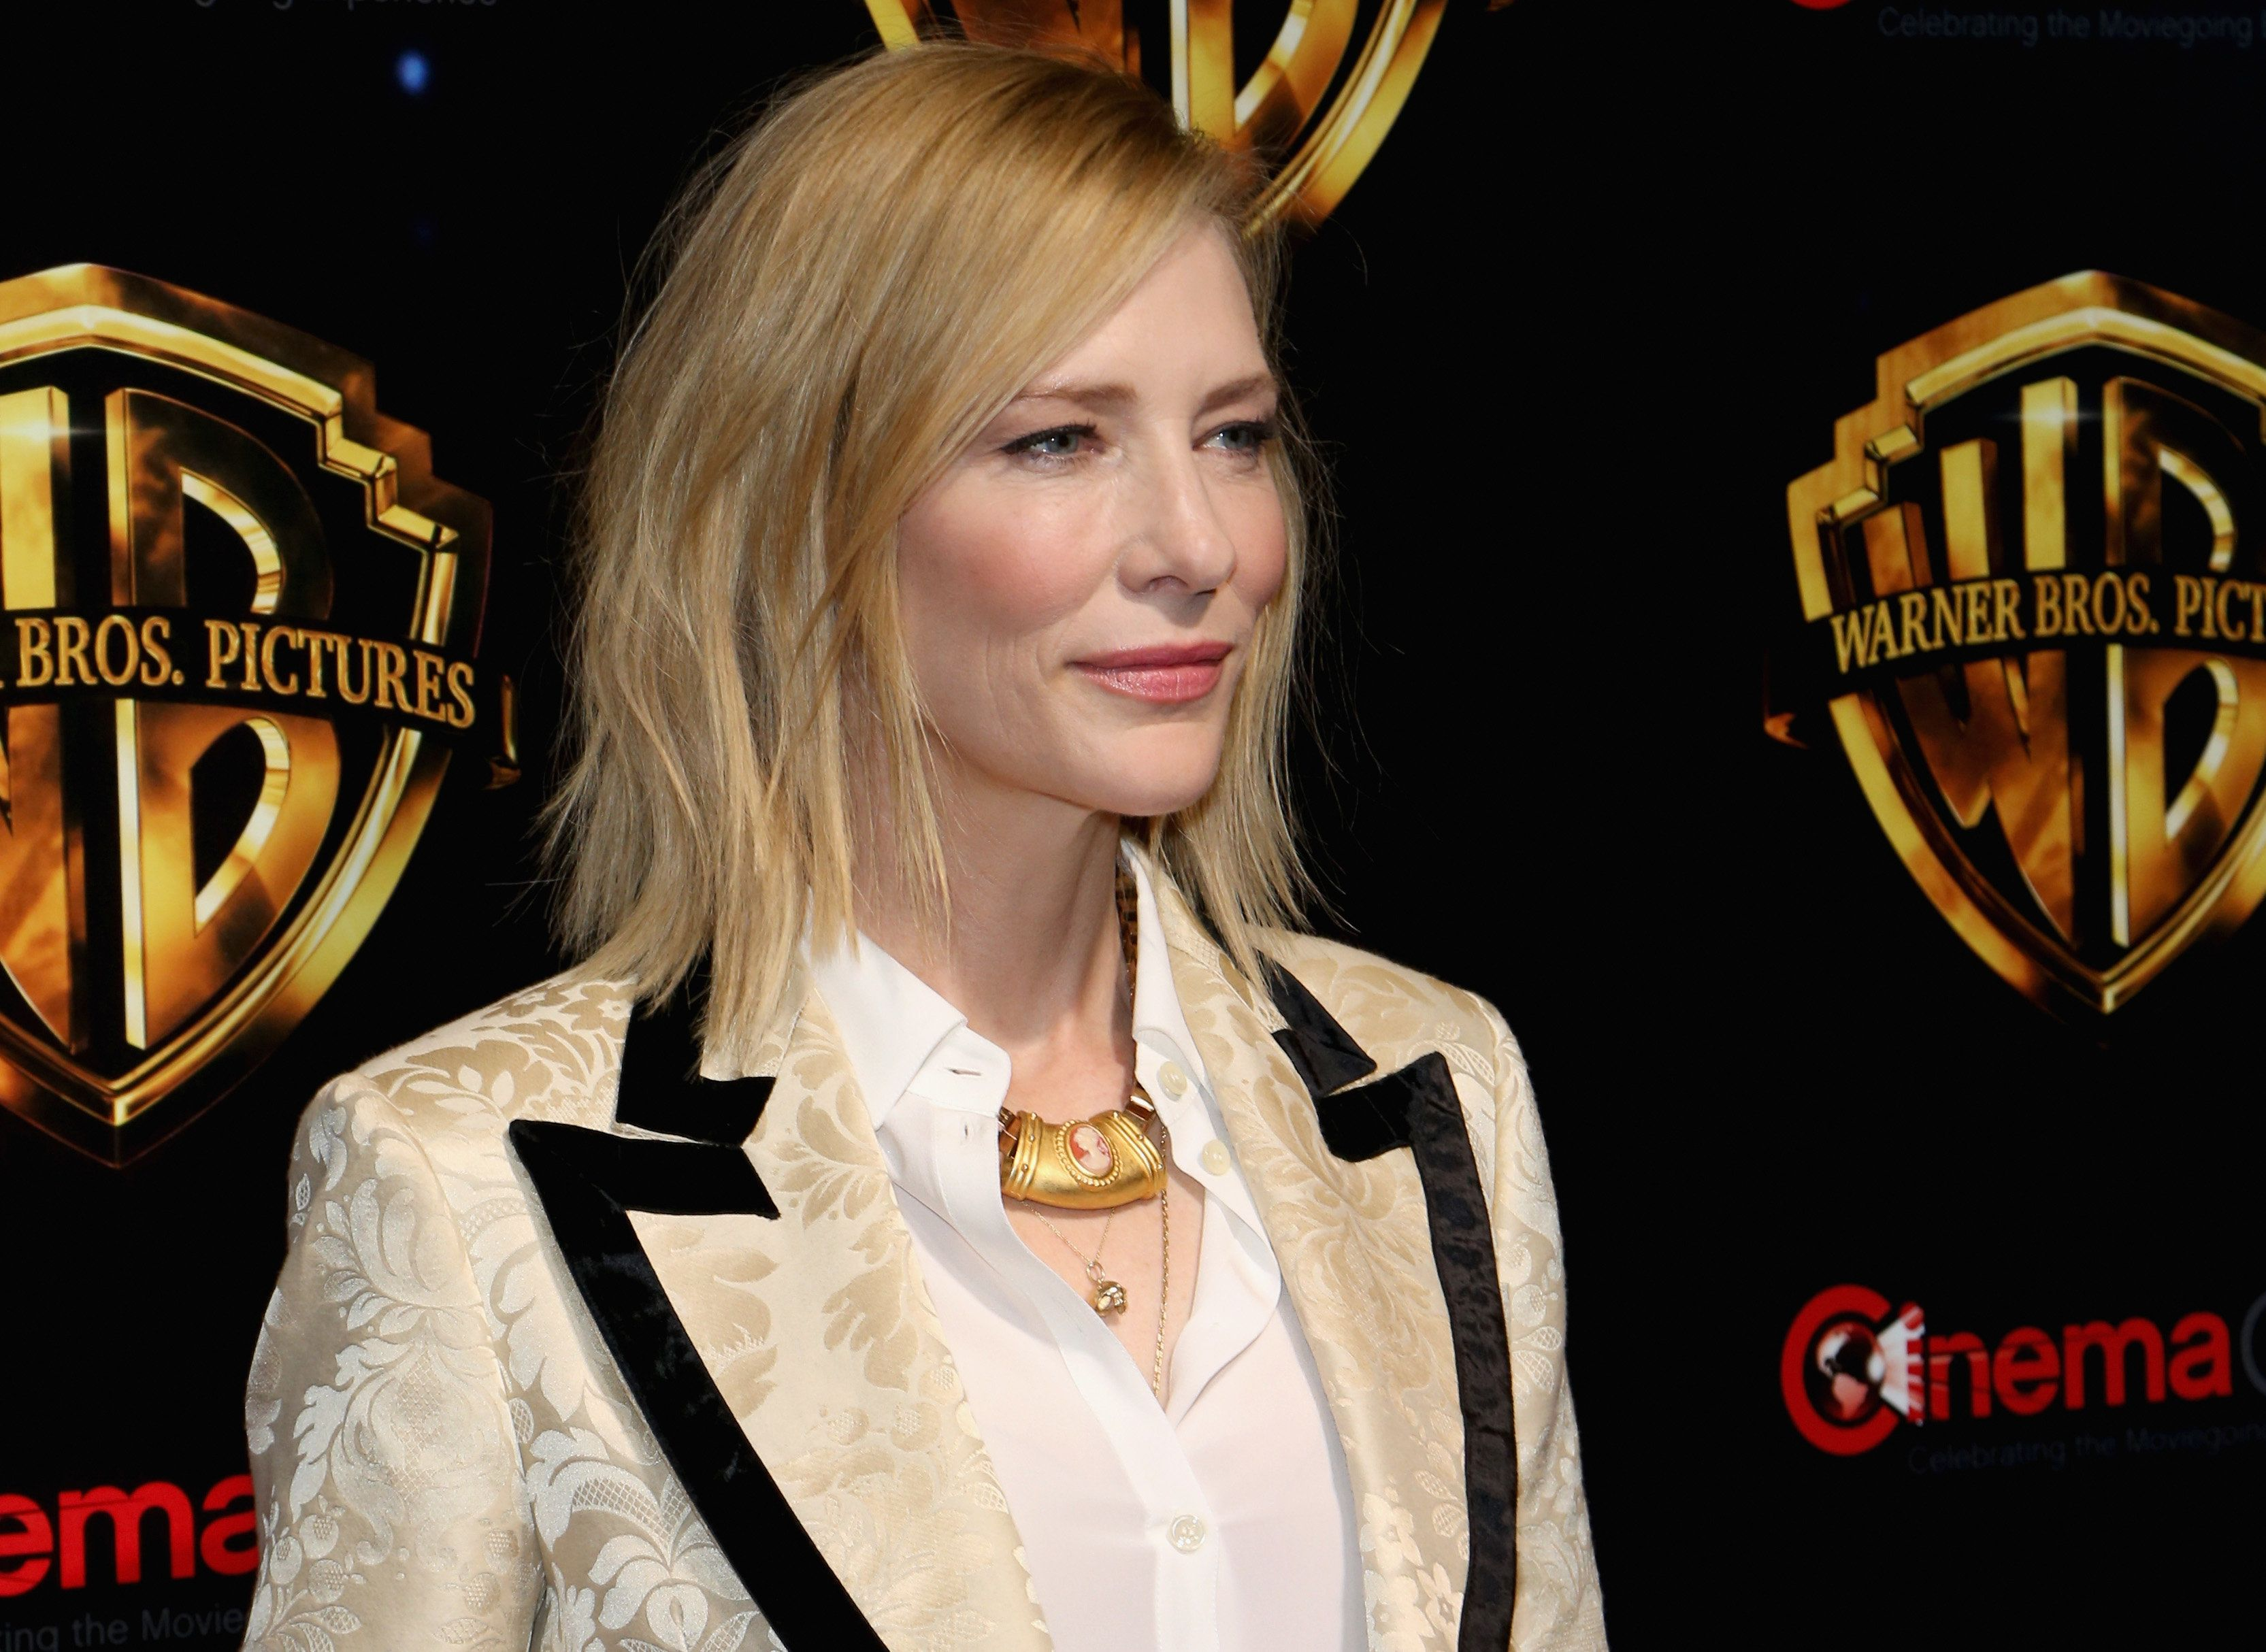 Cate Blanchett Says Harvey Weinstein Harassed Her, Too